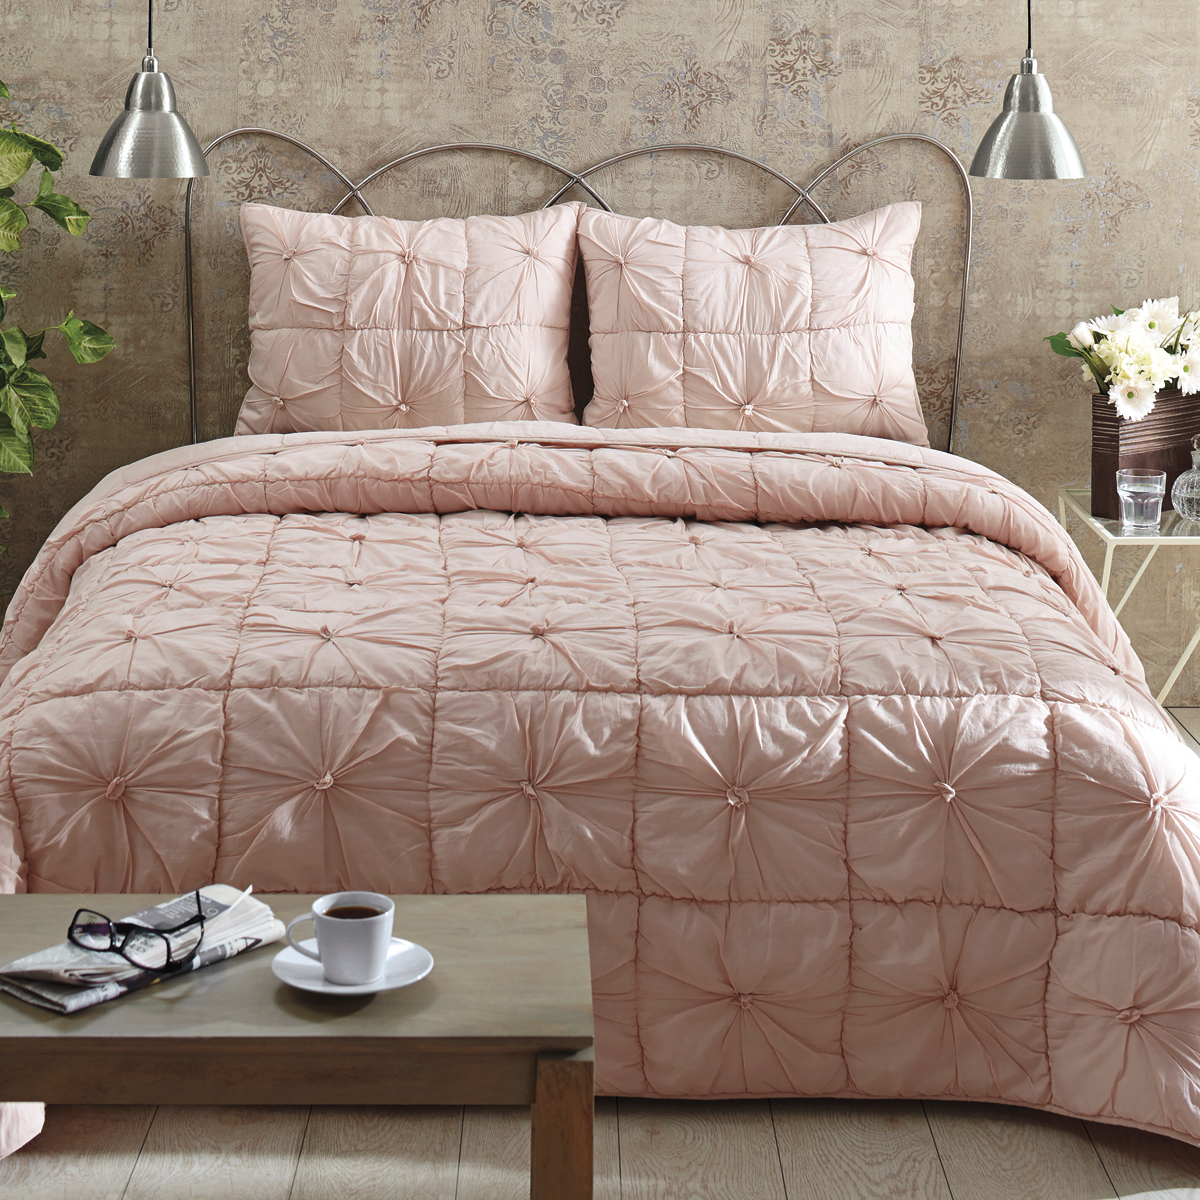 size twin bed full and bedding sets dusty black blush neon pink hot comforter set